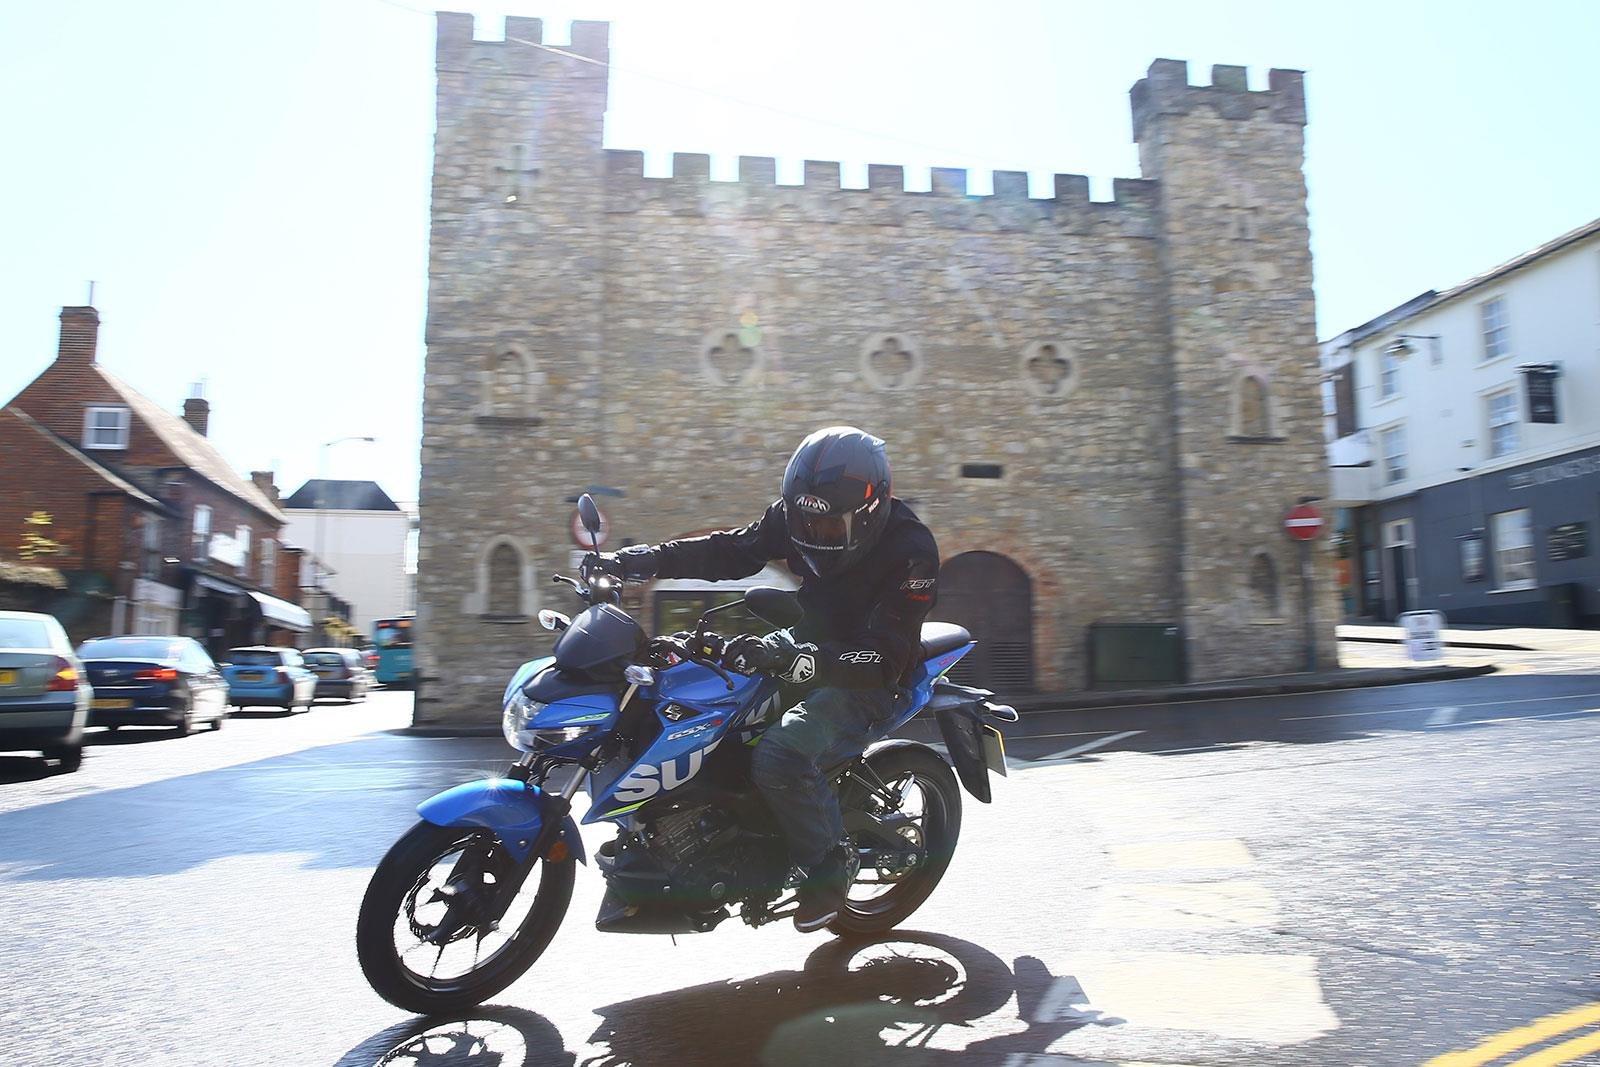 The Suzuki GSX-S125 in action at its launch